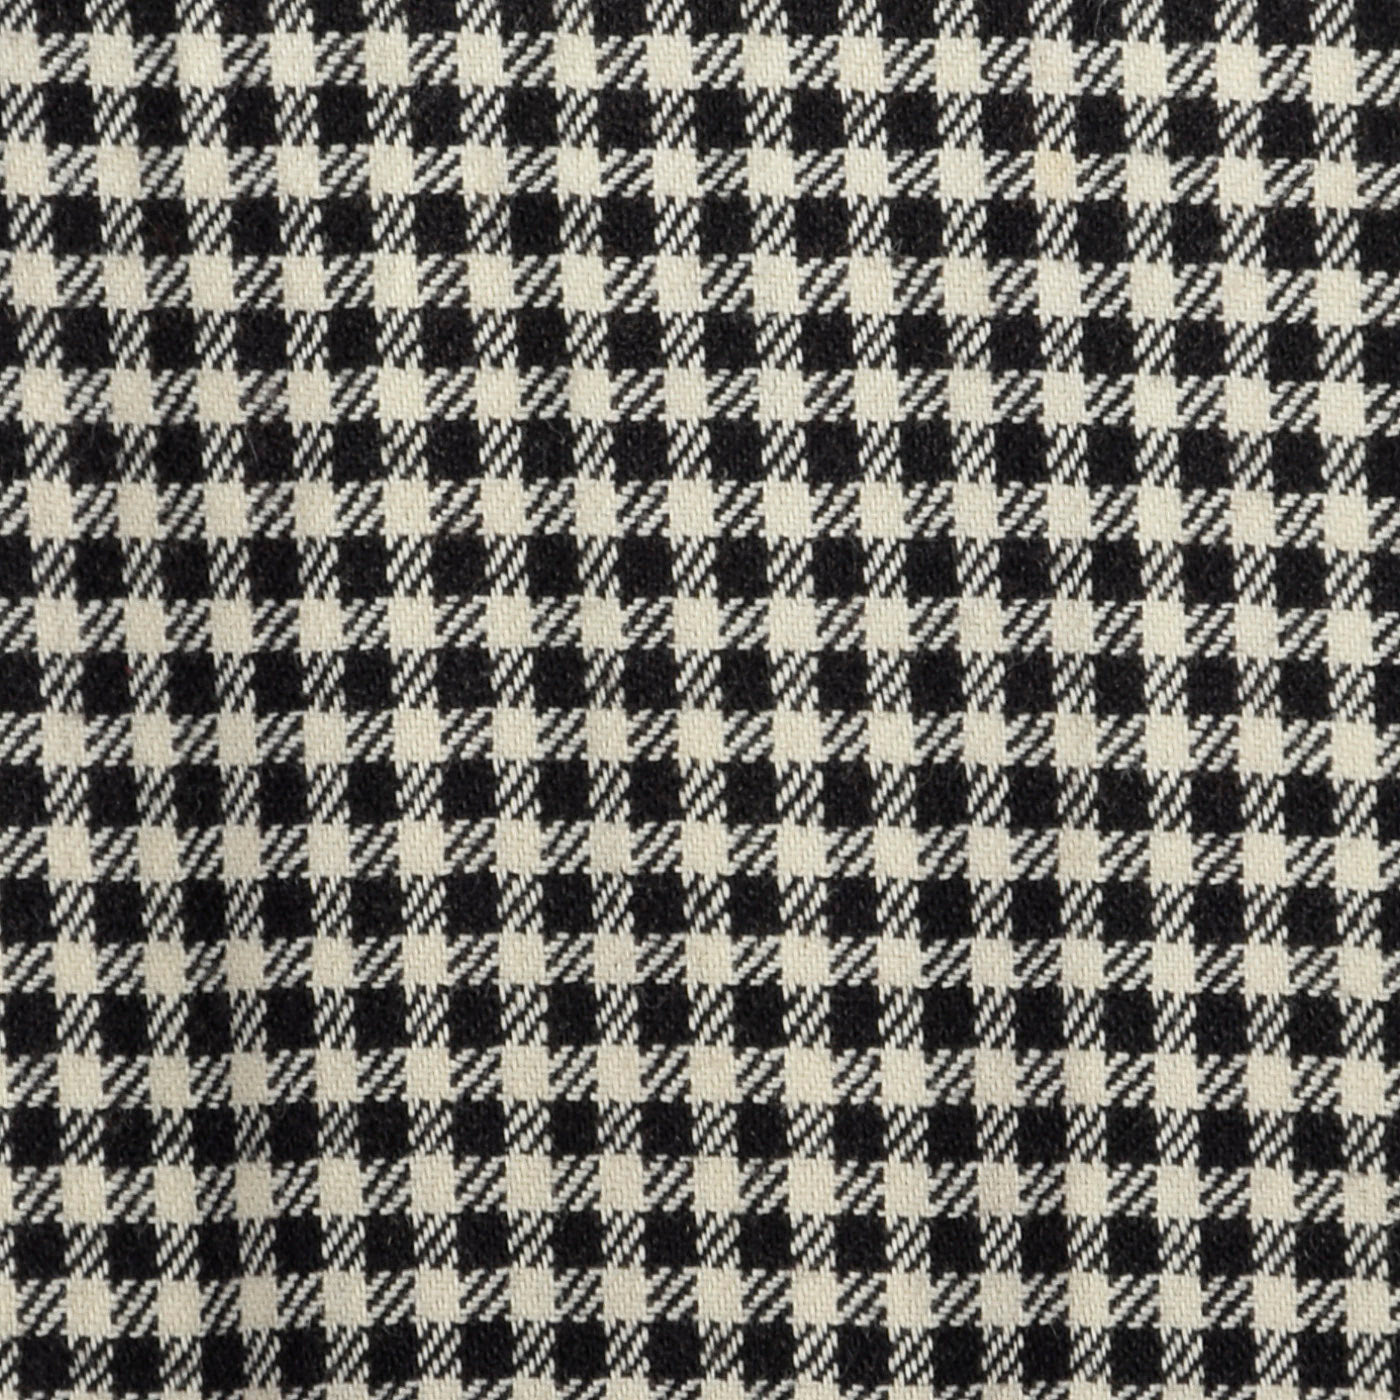 1940s Black and White Check Day Dress